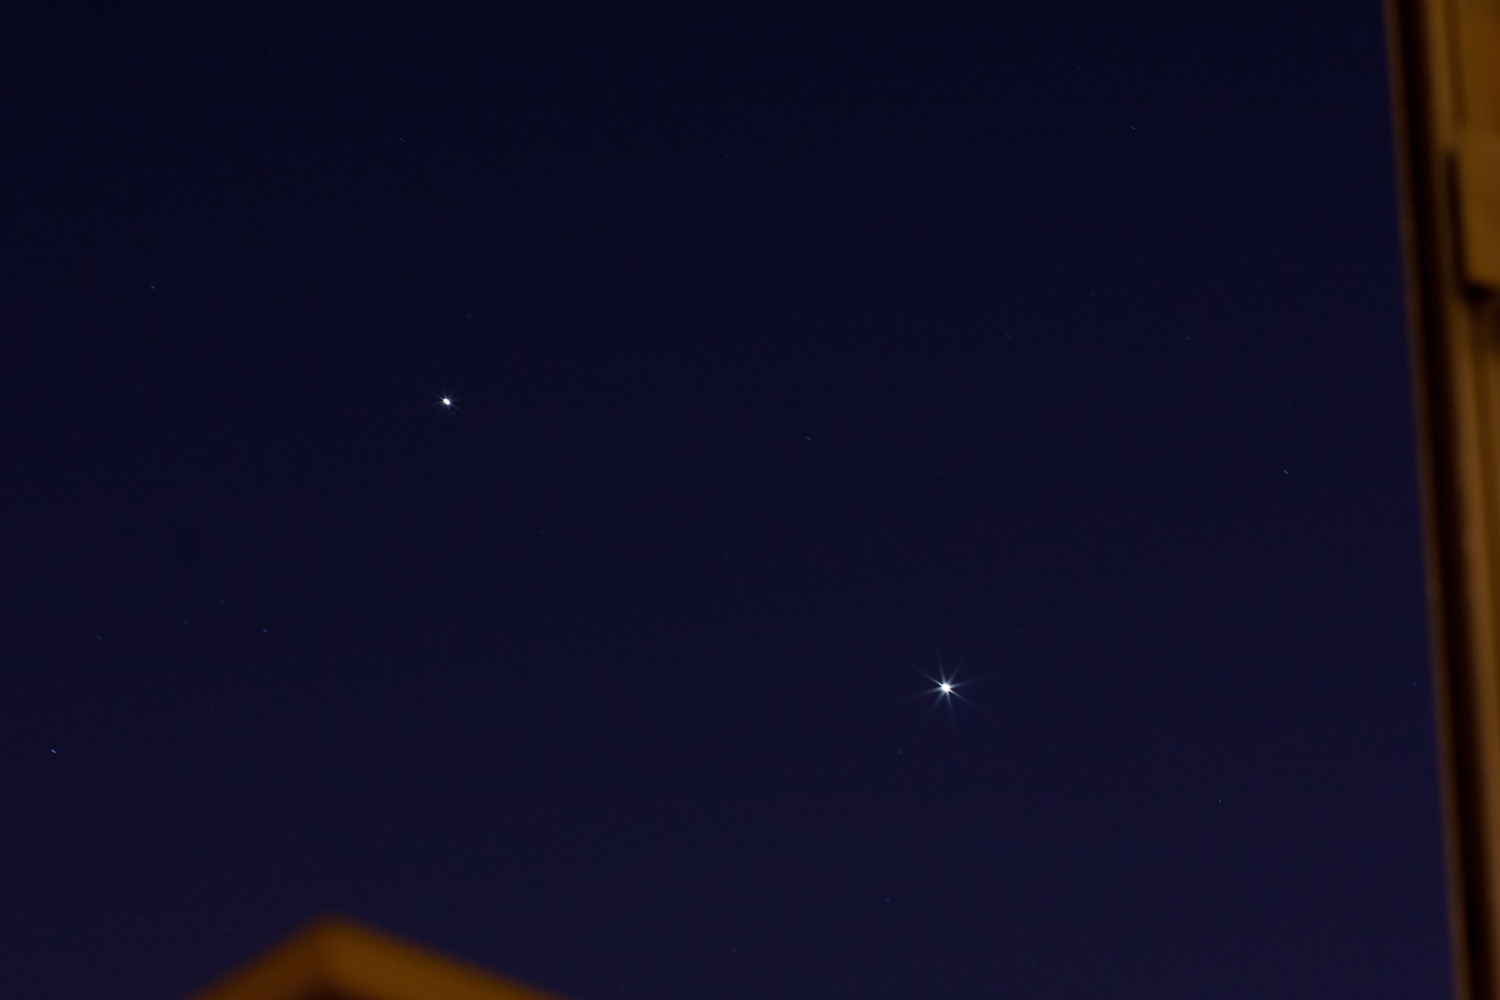 Jupiter and Venus Seen Through a Window